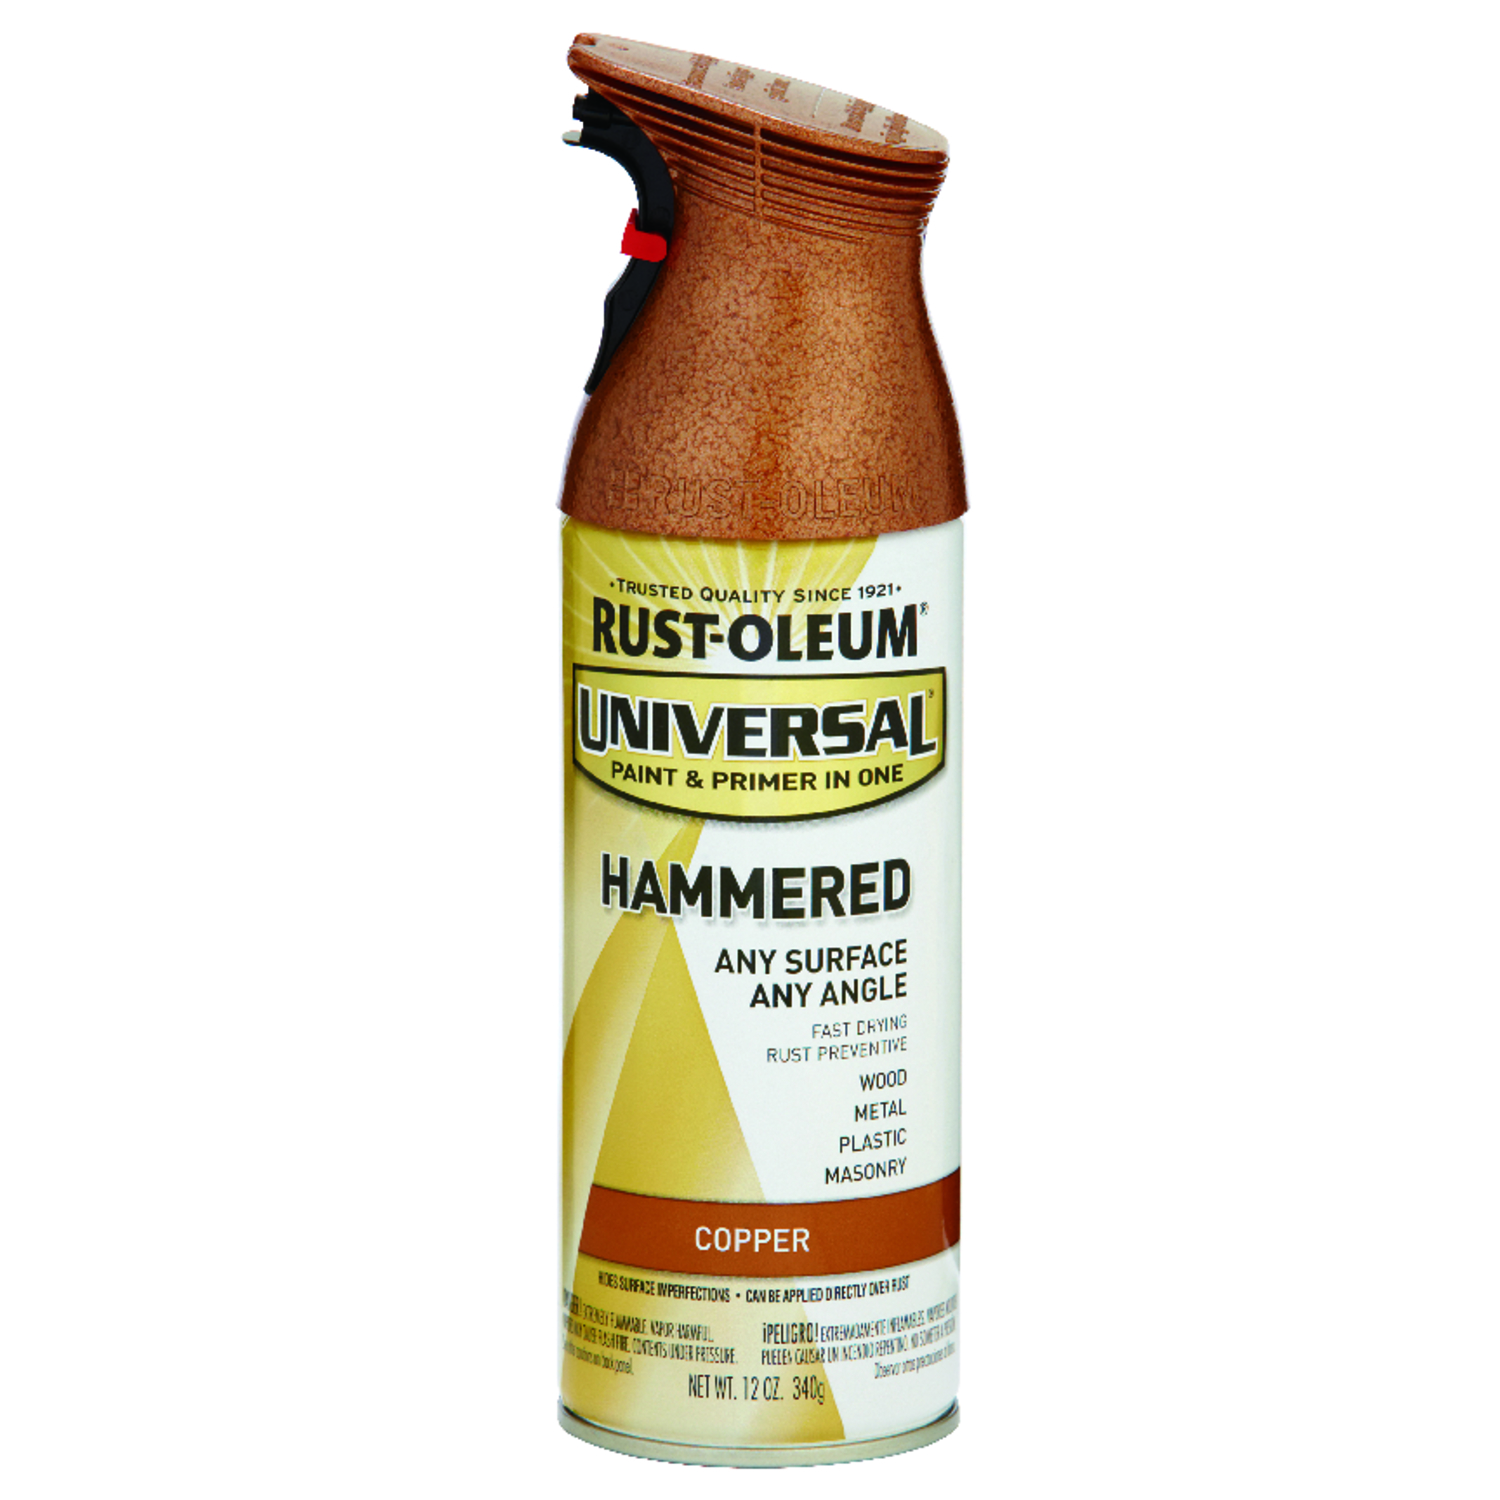 Rust-Oleum Universal Hammered Spray Paint Copper 12 oz. - Ace Hardware